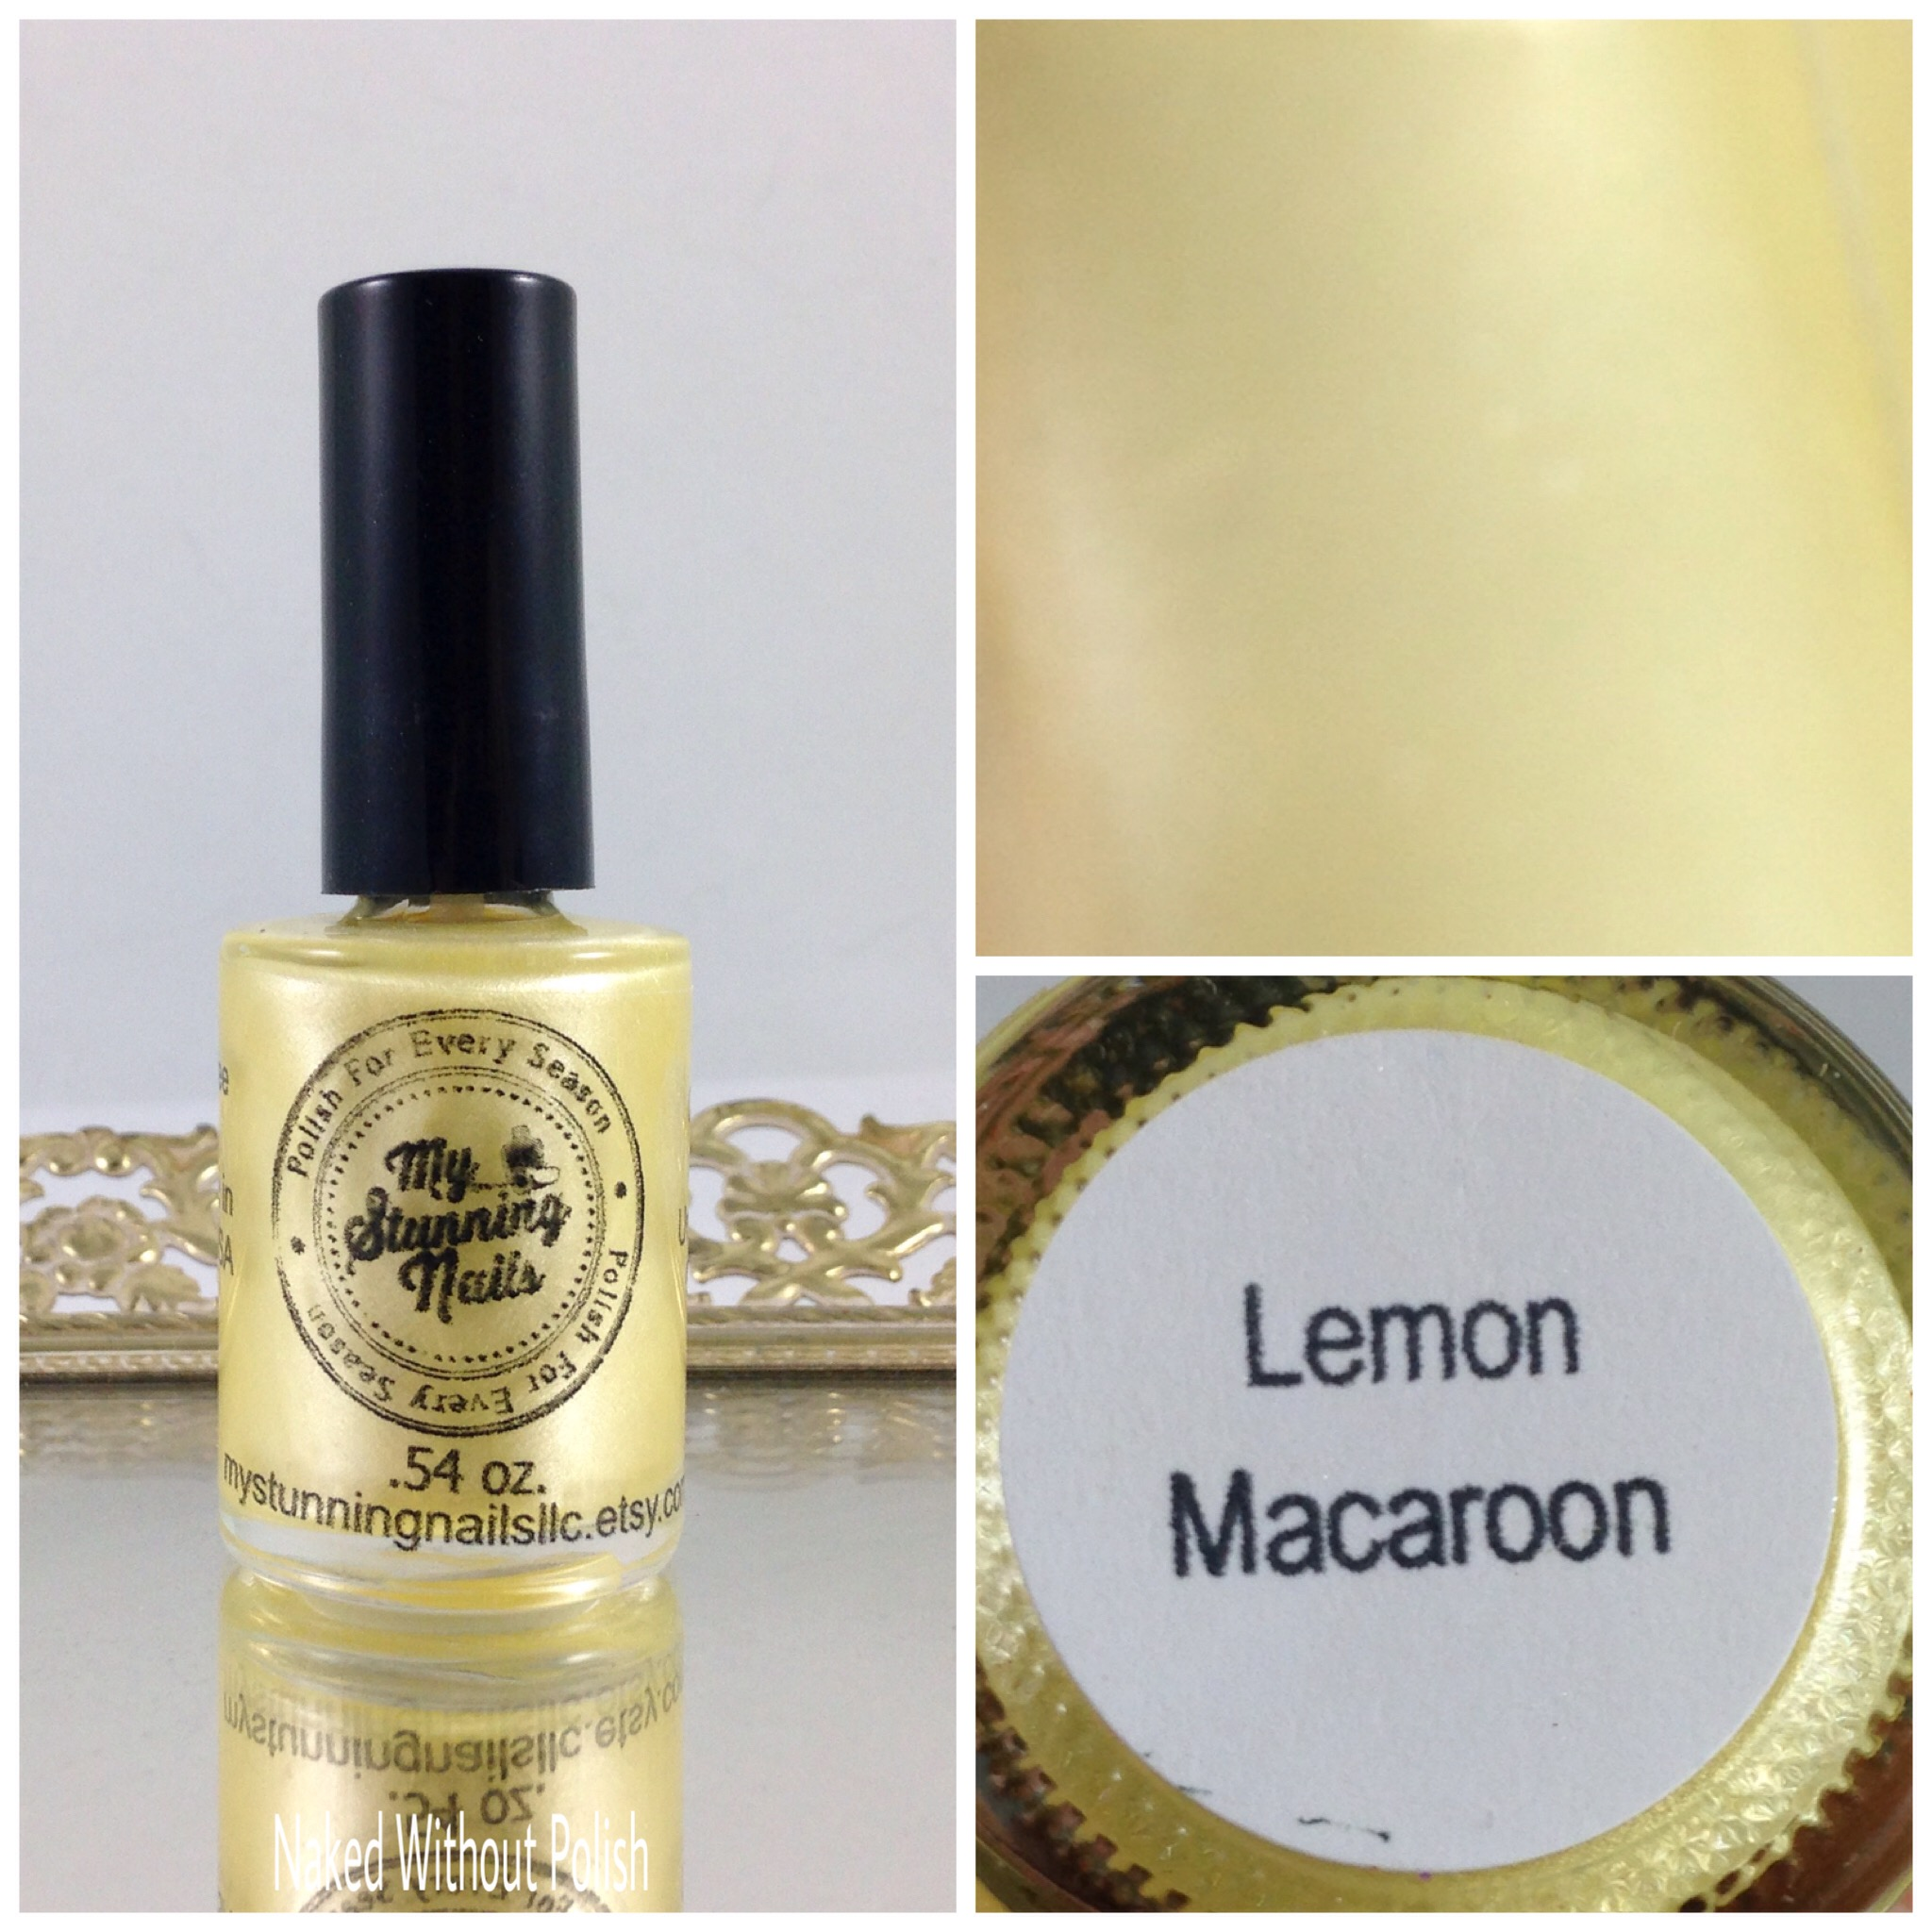 My-Stunning-Nails-Lemon-Macaroon-1